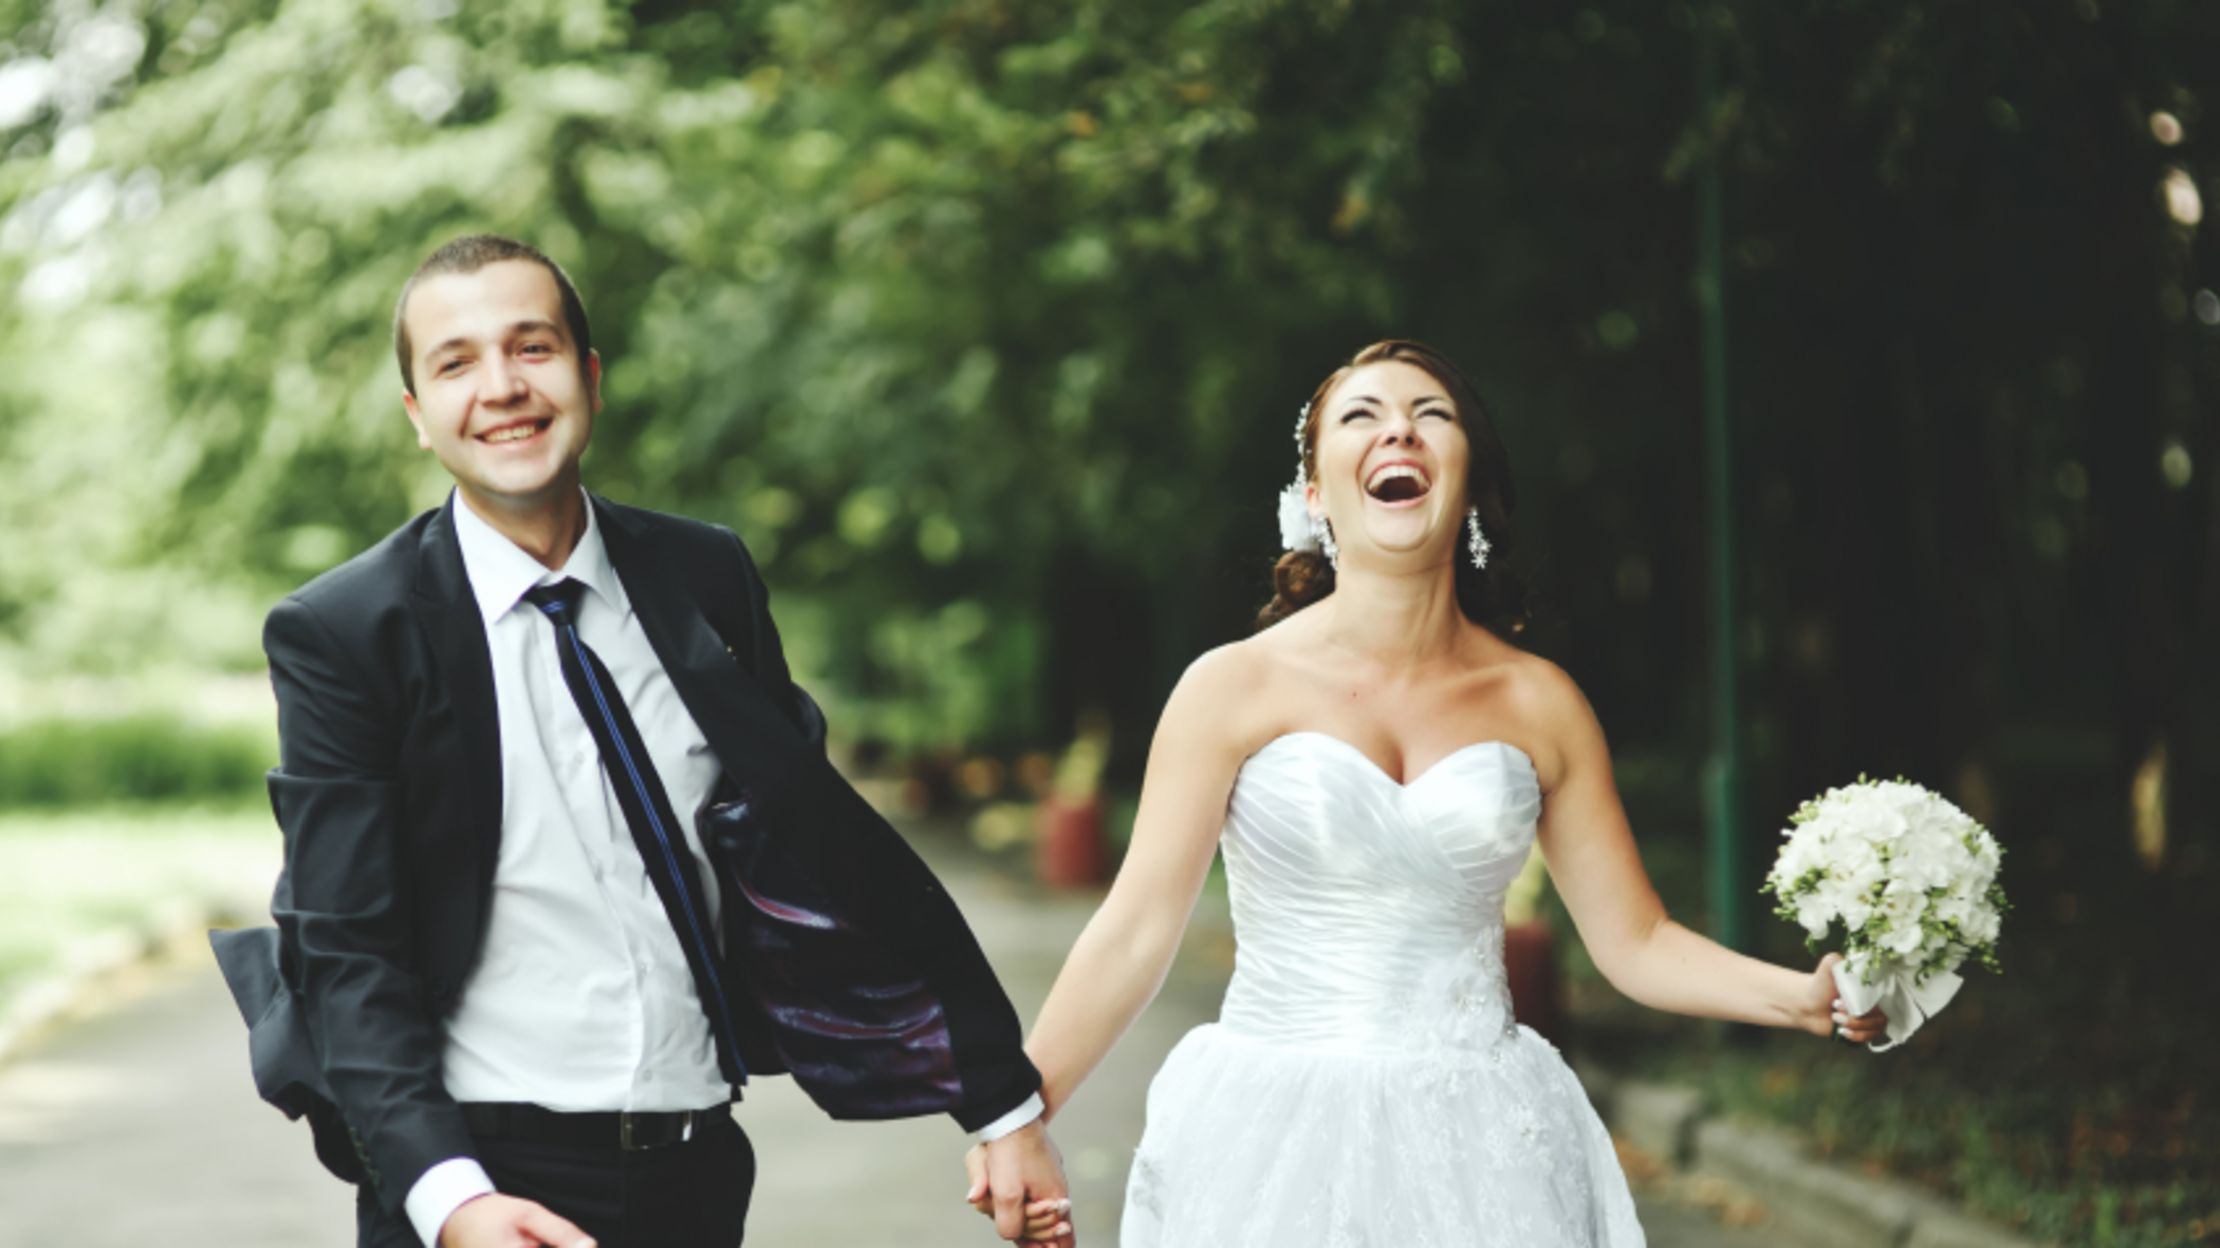 Advice For Creating A Memorable Wedding Experience